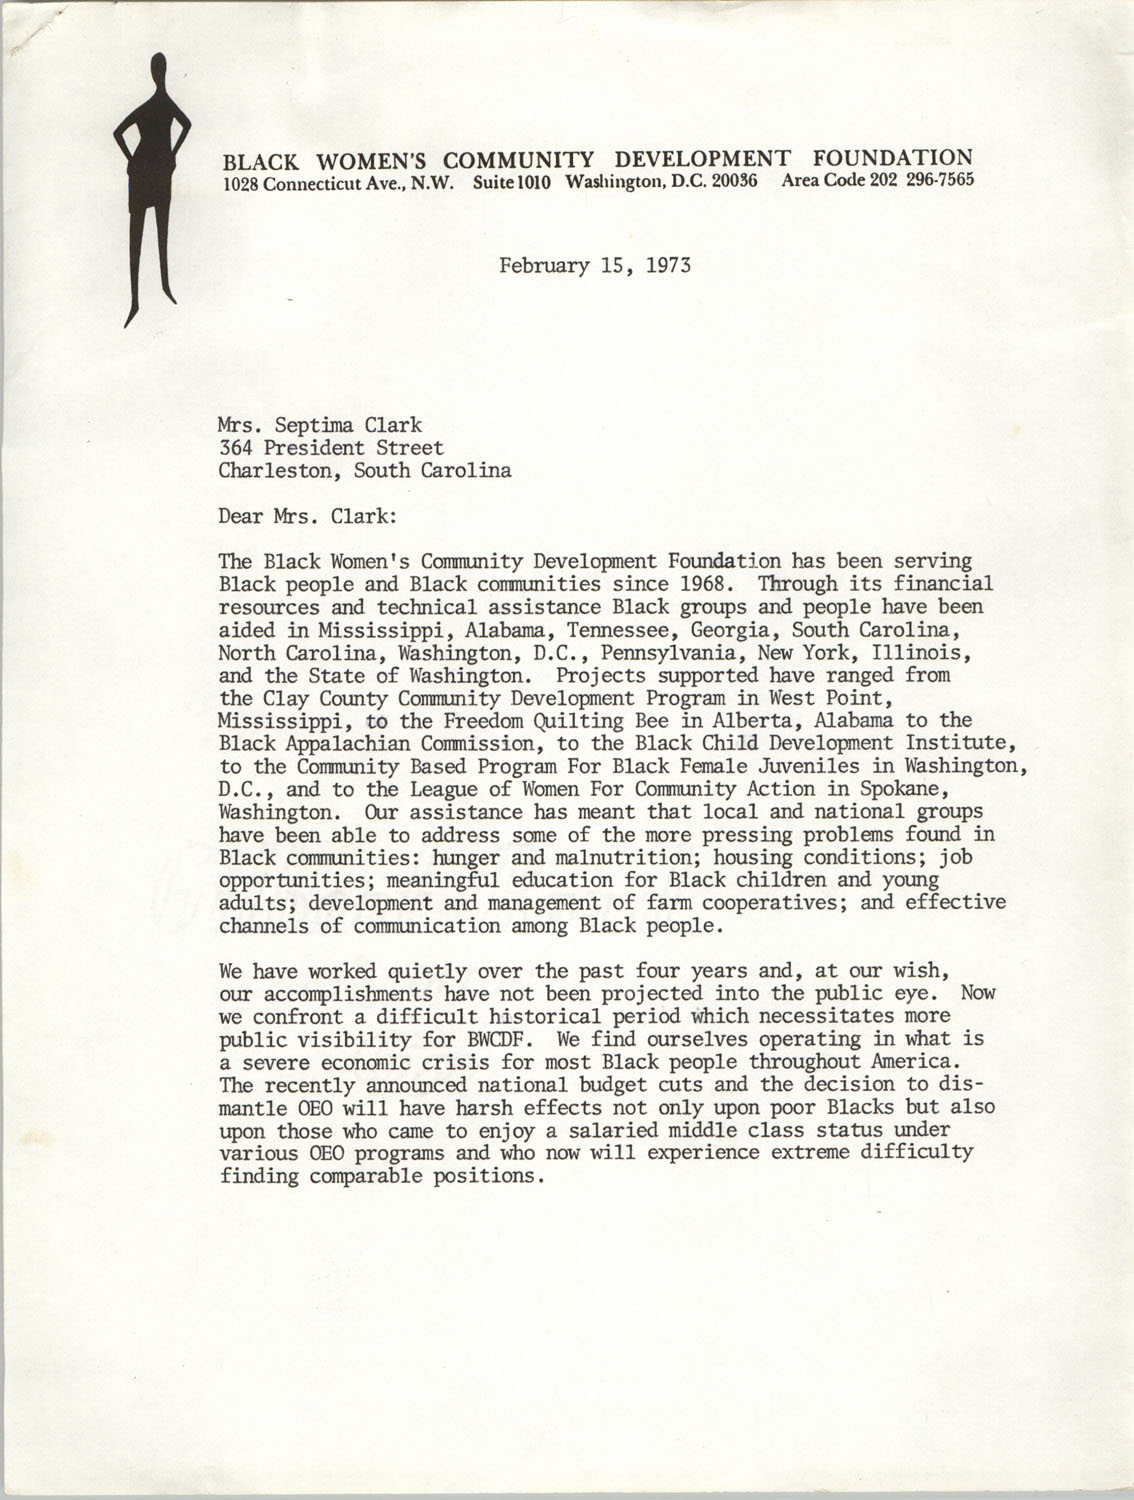 Letter from Inez Smith Reid to Septima P. Clark, February 15, 1973